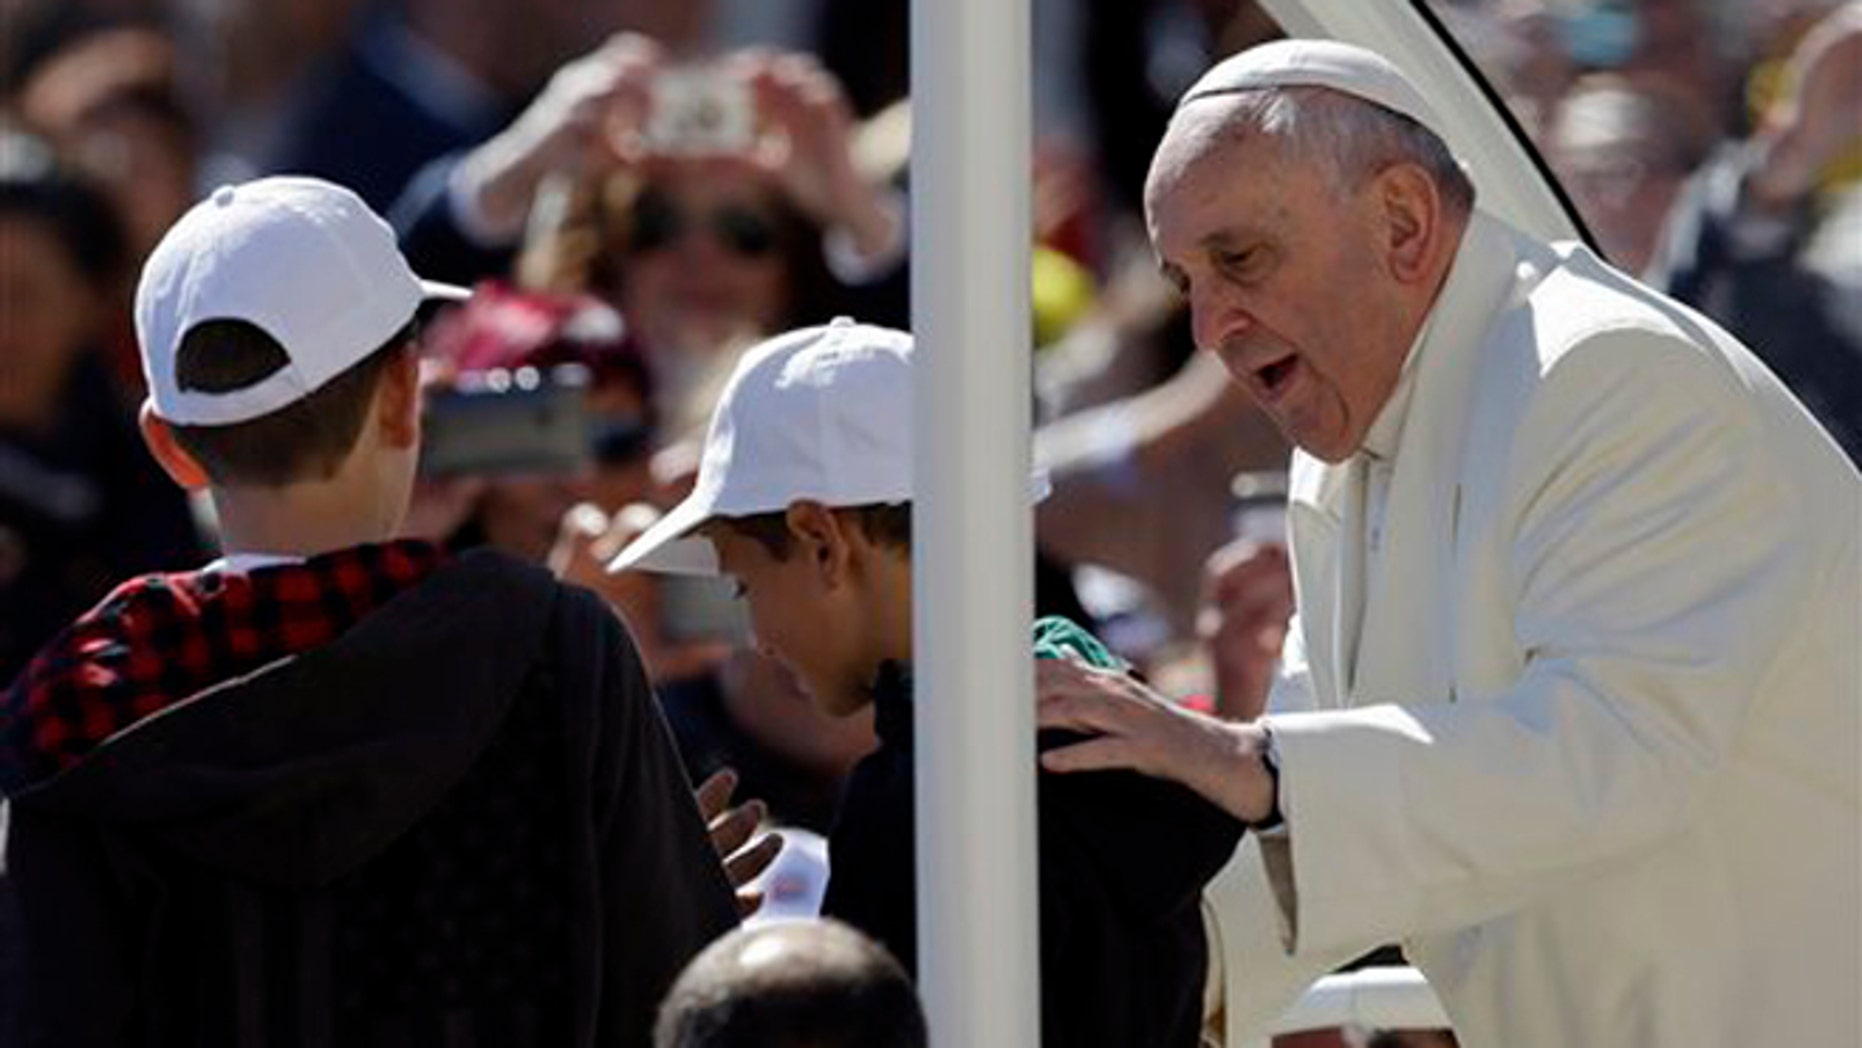 Pope Francis greets 11-year-olds Livio Bastianelli and Davide Maria Bianchi Wednesday, April 16, 2014.